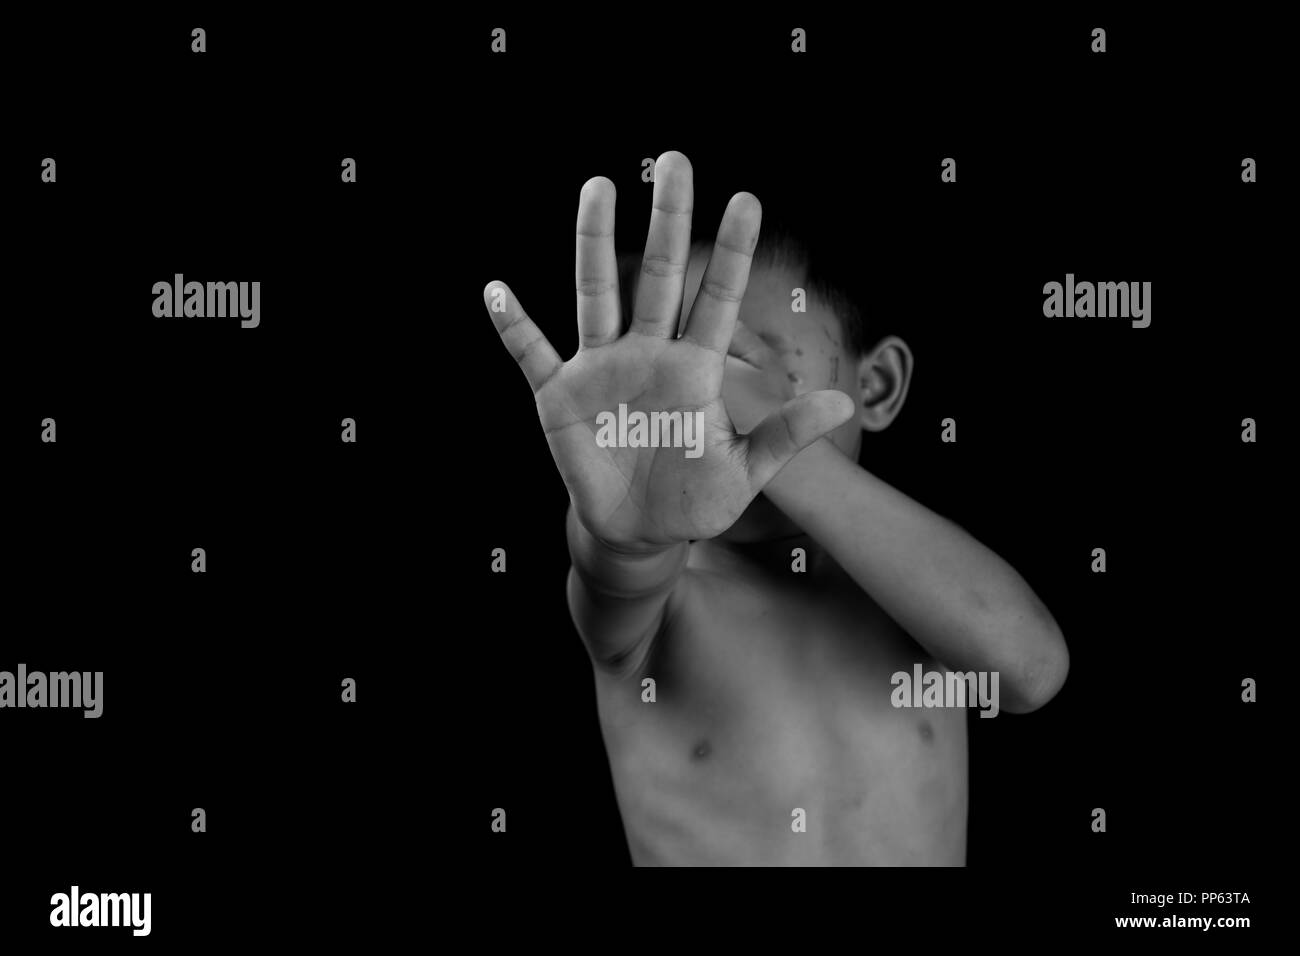 Stop abusing violence, Human trafficking, End to violence against children. - Stock Image